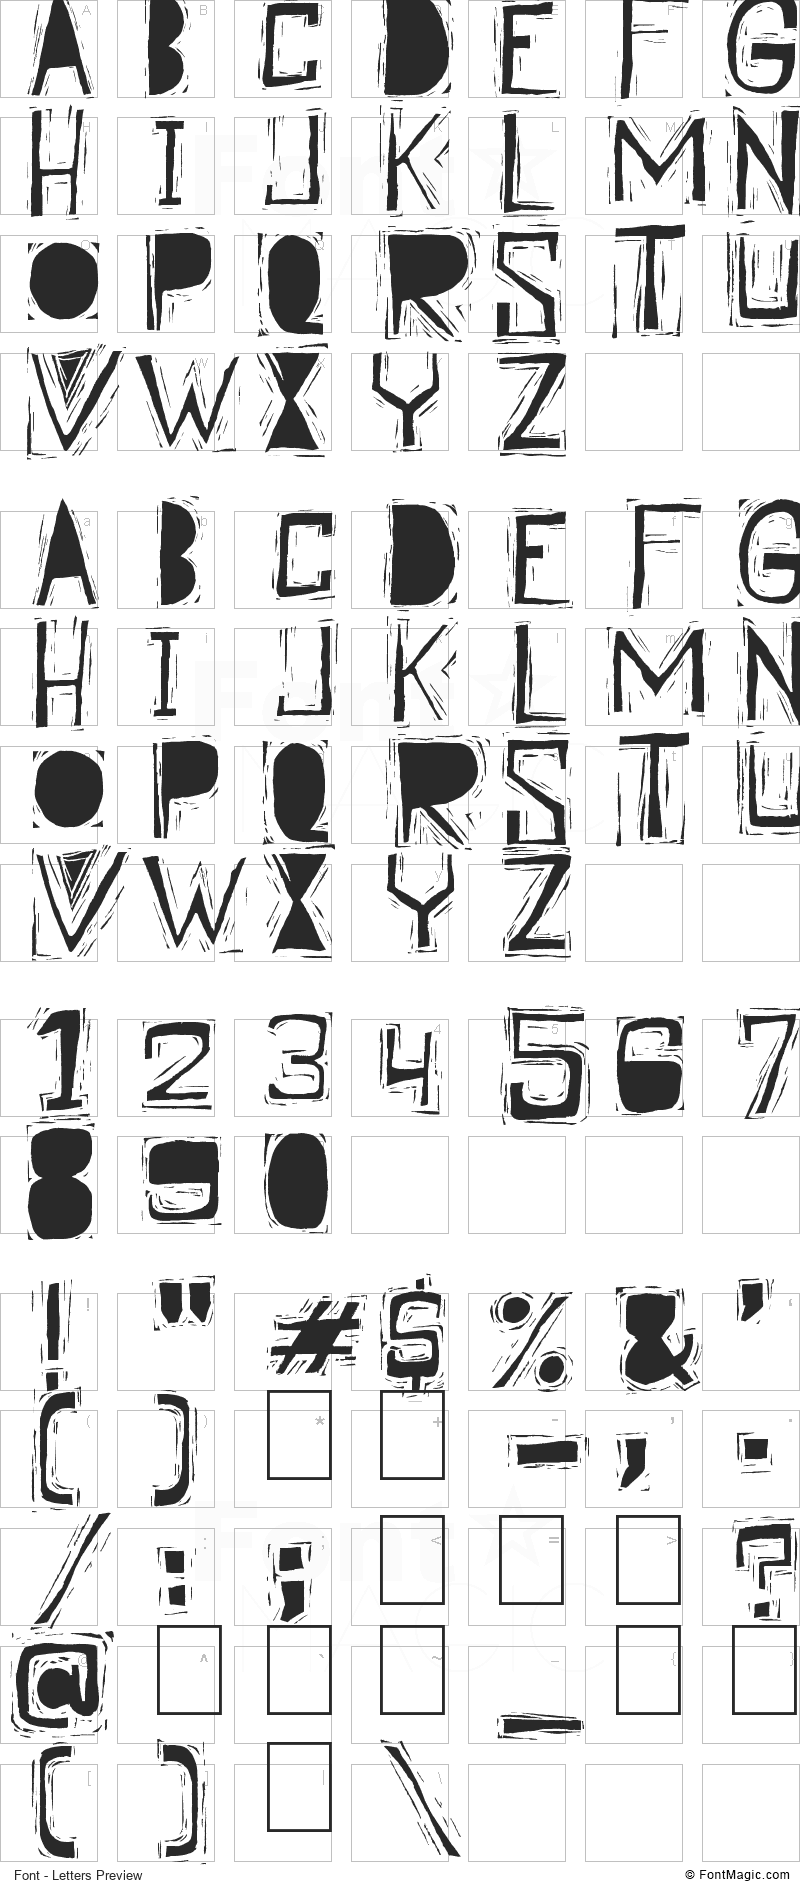 Linographer Font - All Latters Preview Chart